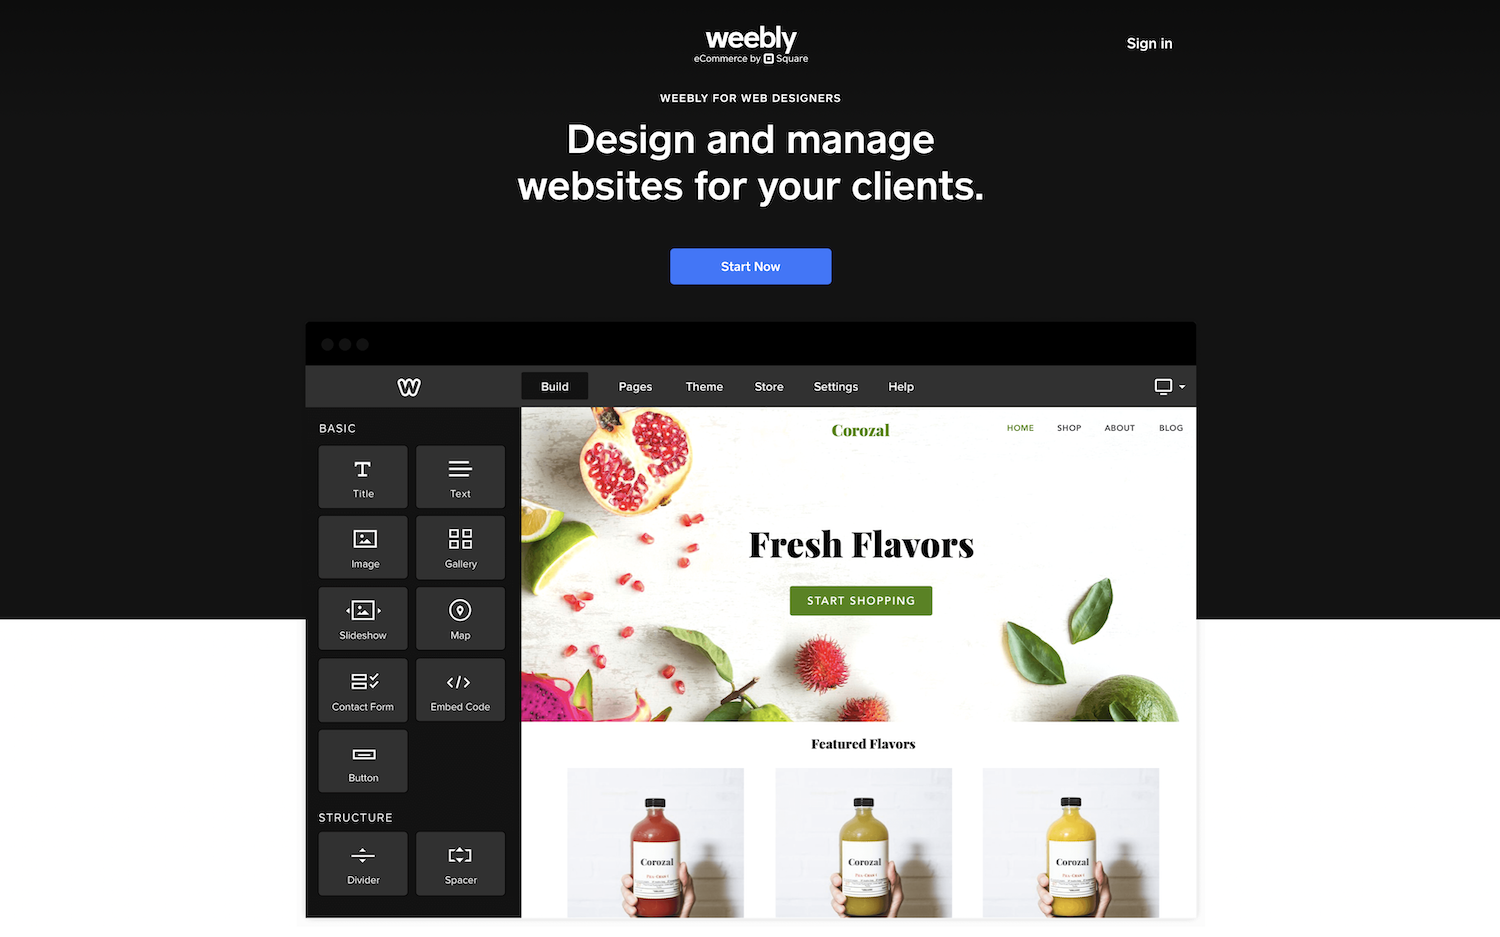 How To Make Serious Money Doing Web Design With Weebly